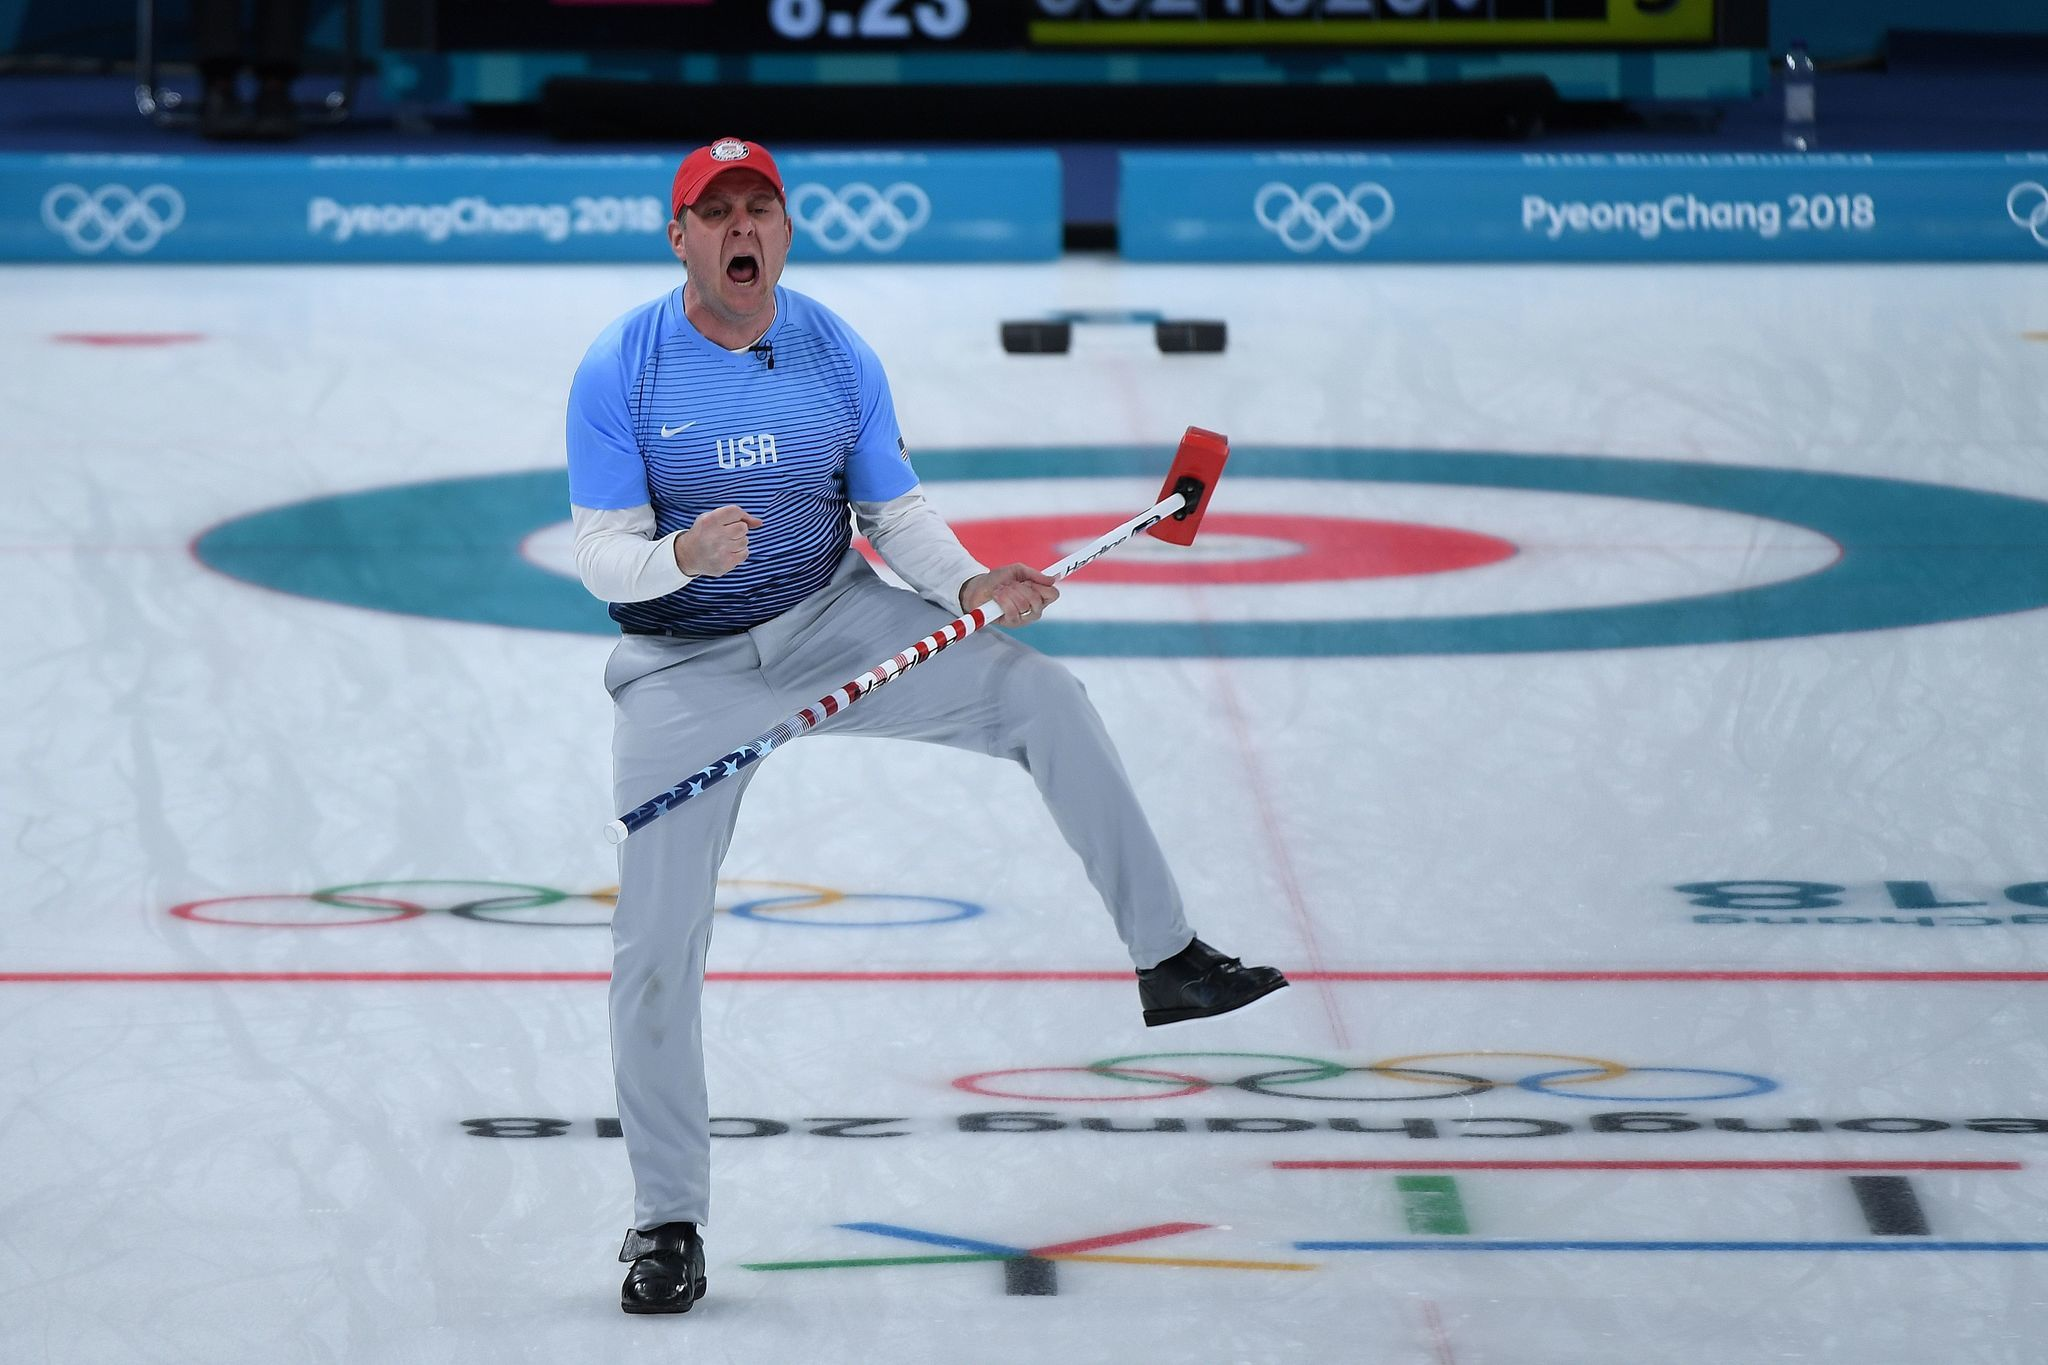 American men win Olympic curling gold upsetting Sweden